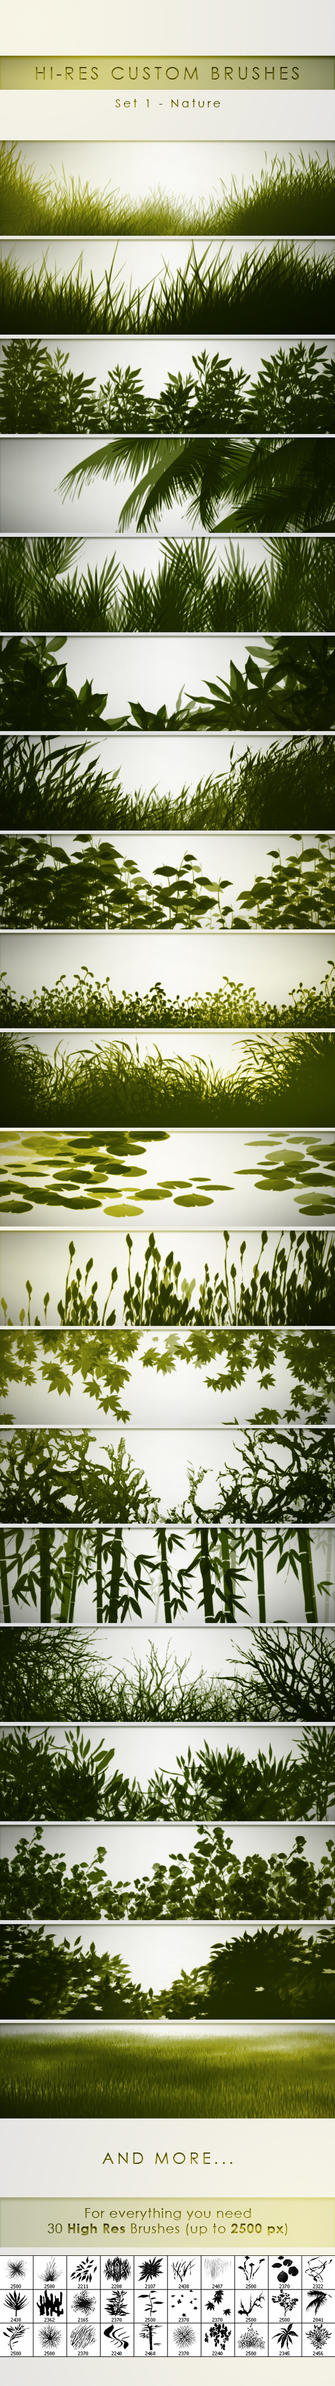 30 Hi-Res Custom Brushes - Nature by PrismaDesign